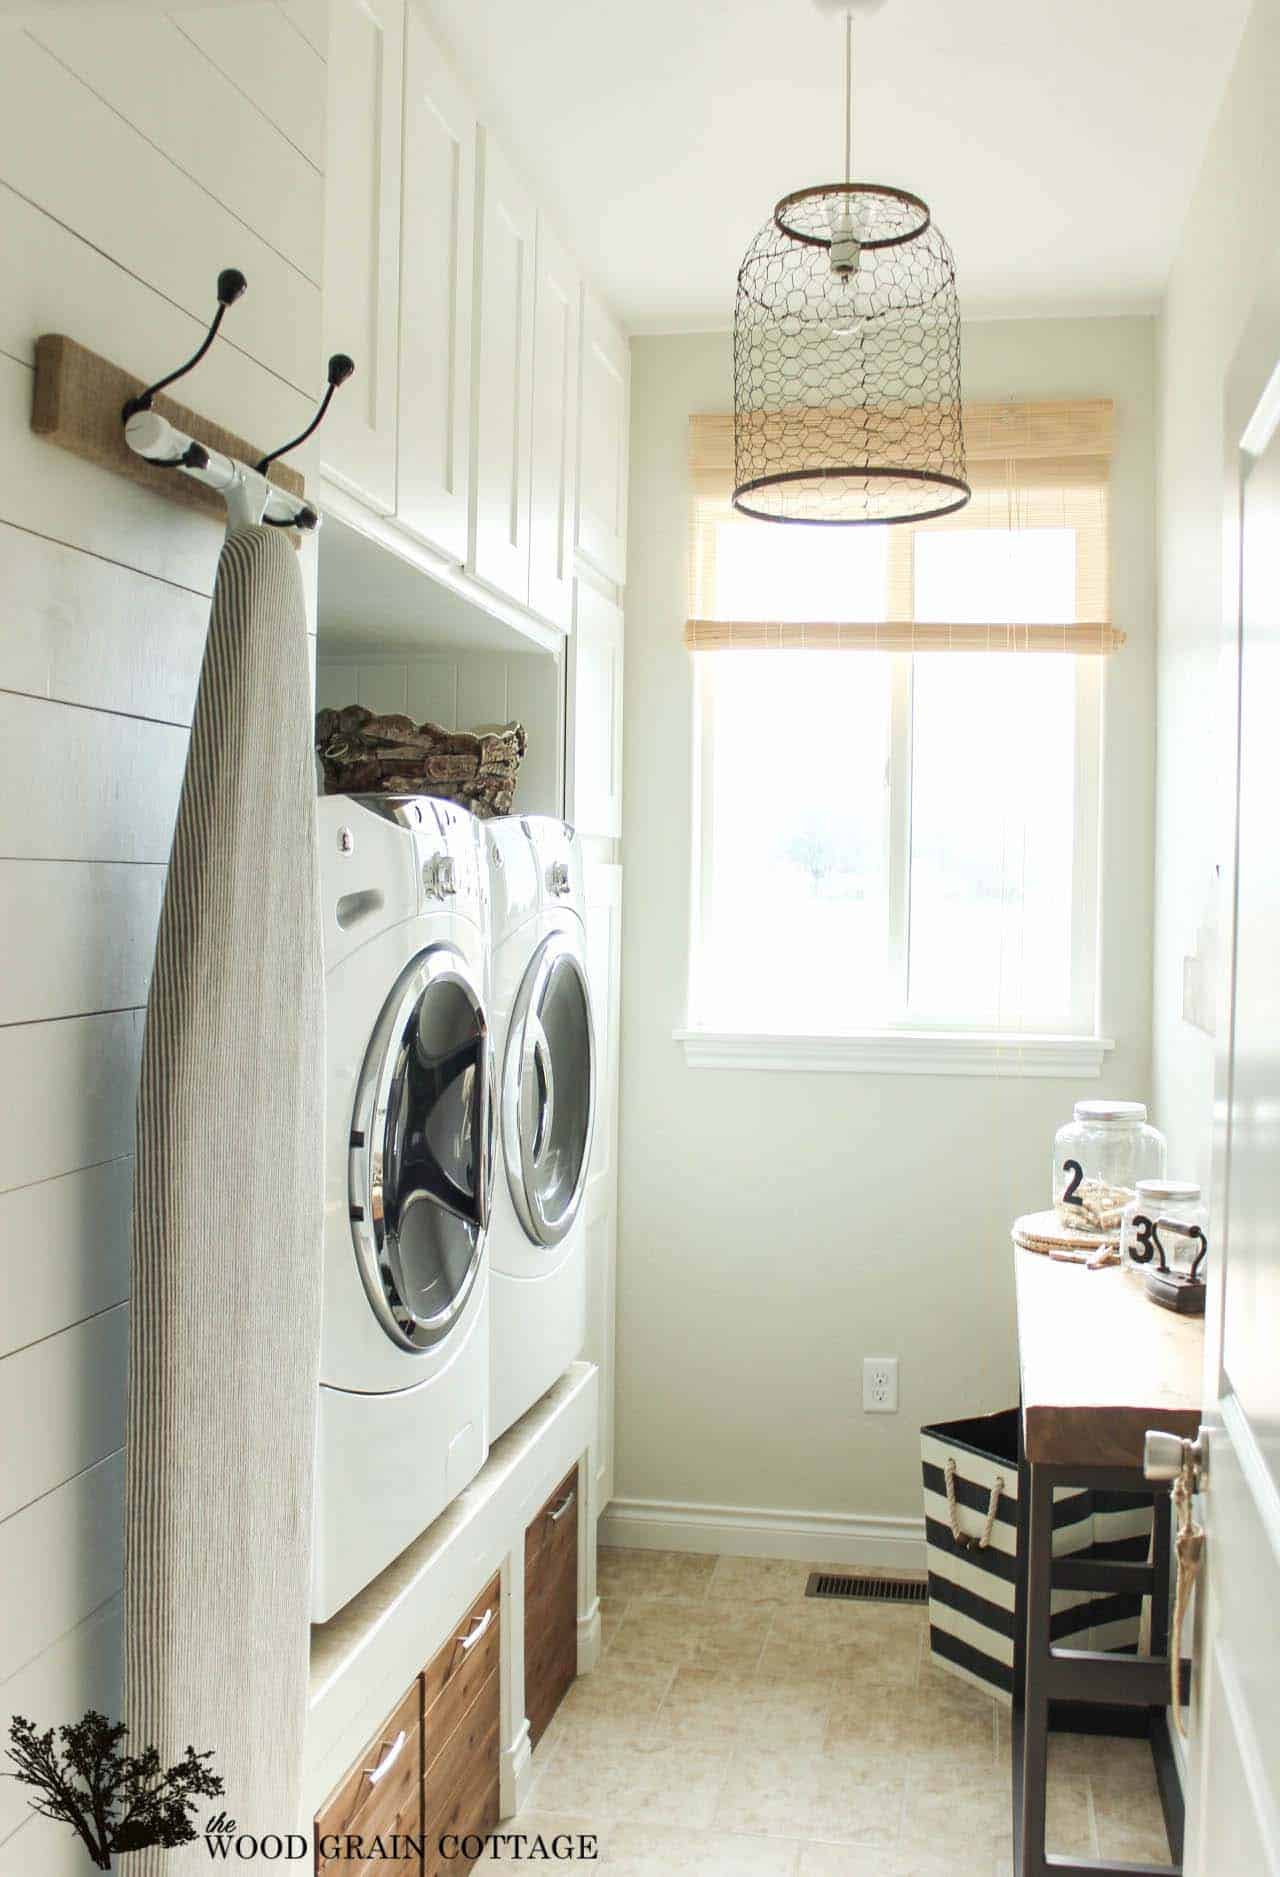 Functional-Stylish Small Laundry Rooms-28-1 Kindesign